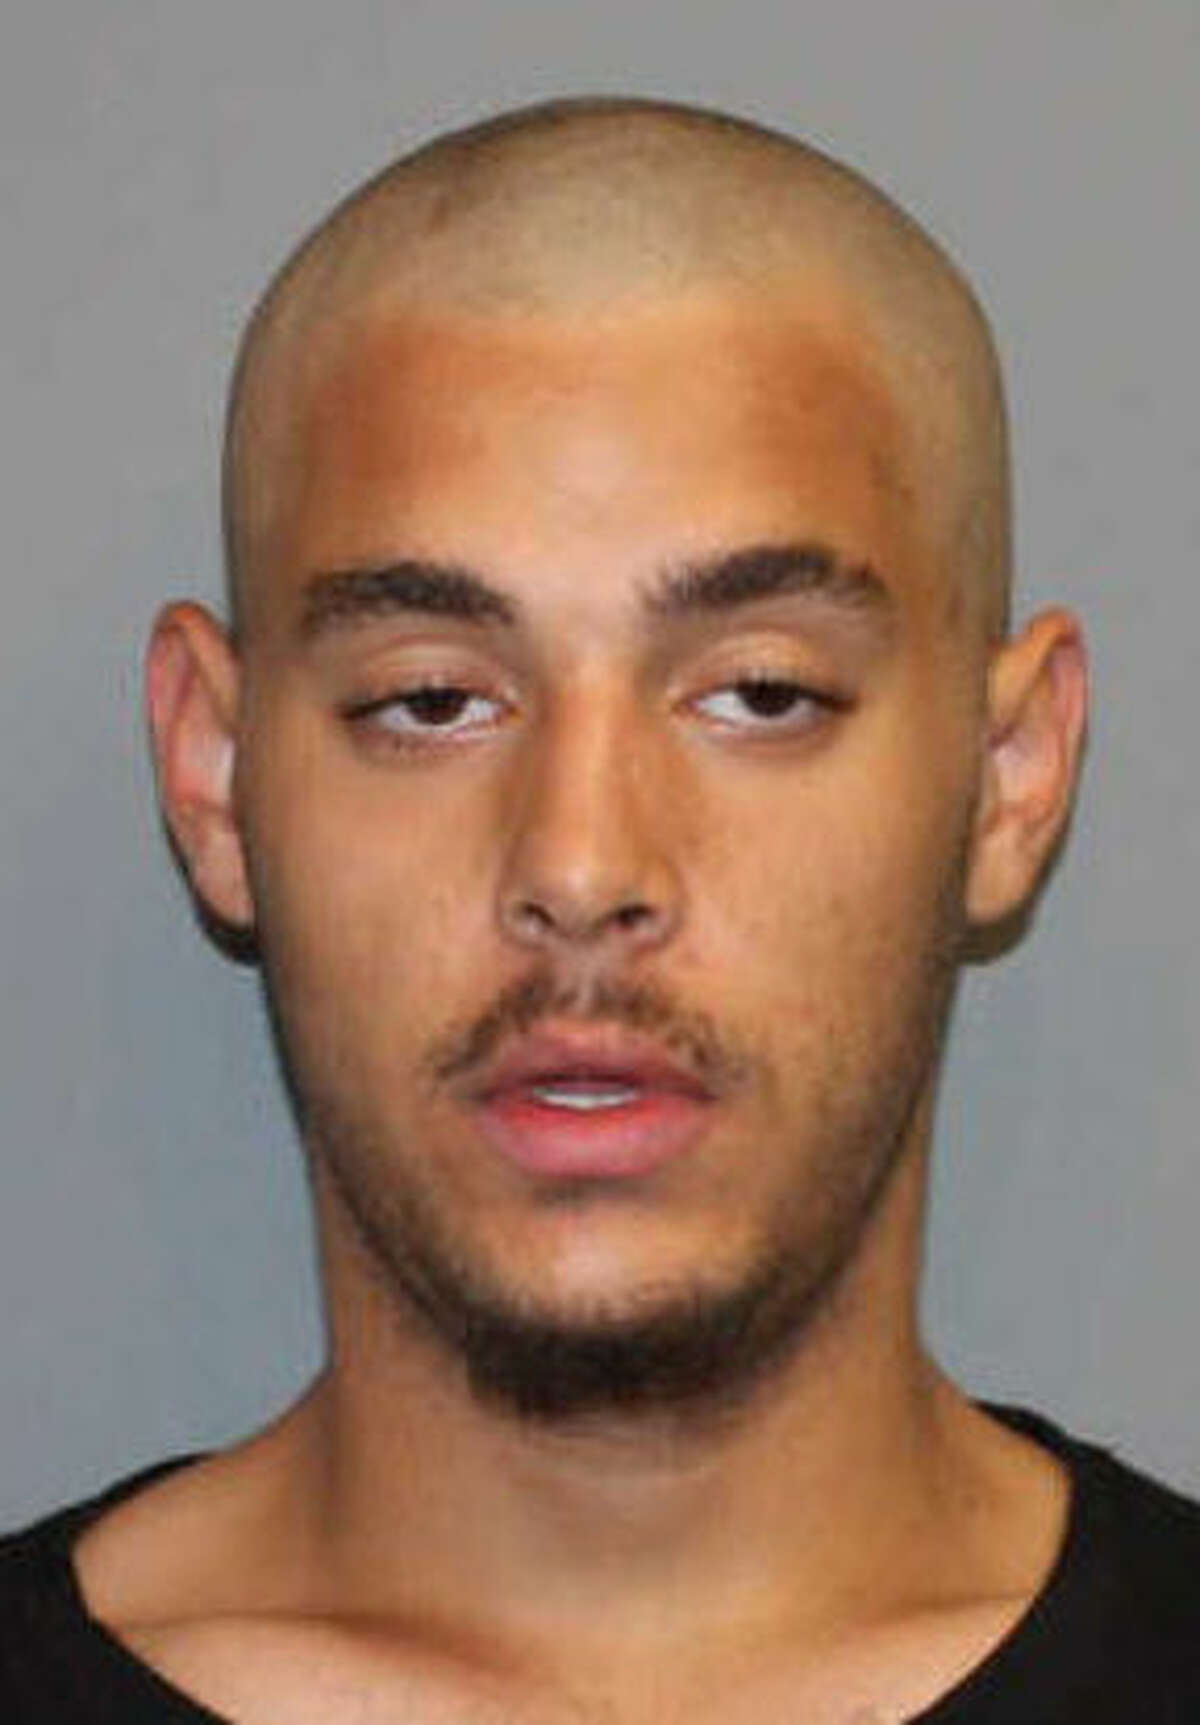 Matthew White, 19, of 65 George Ave.